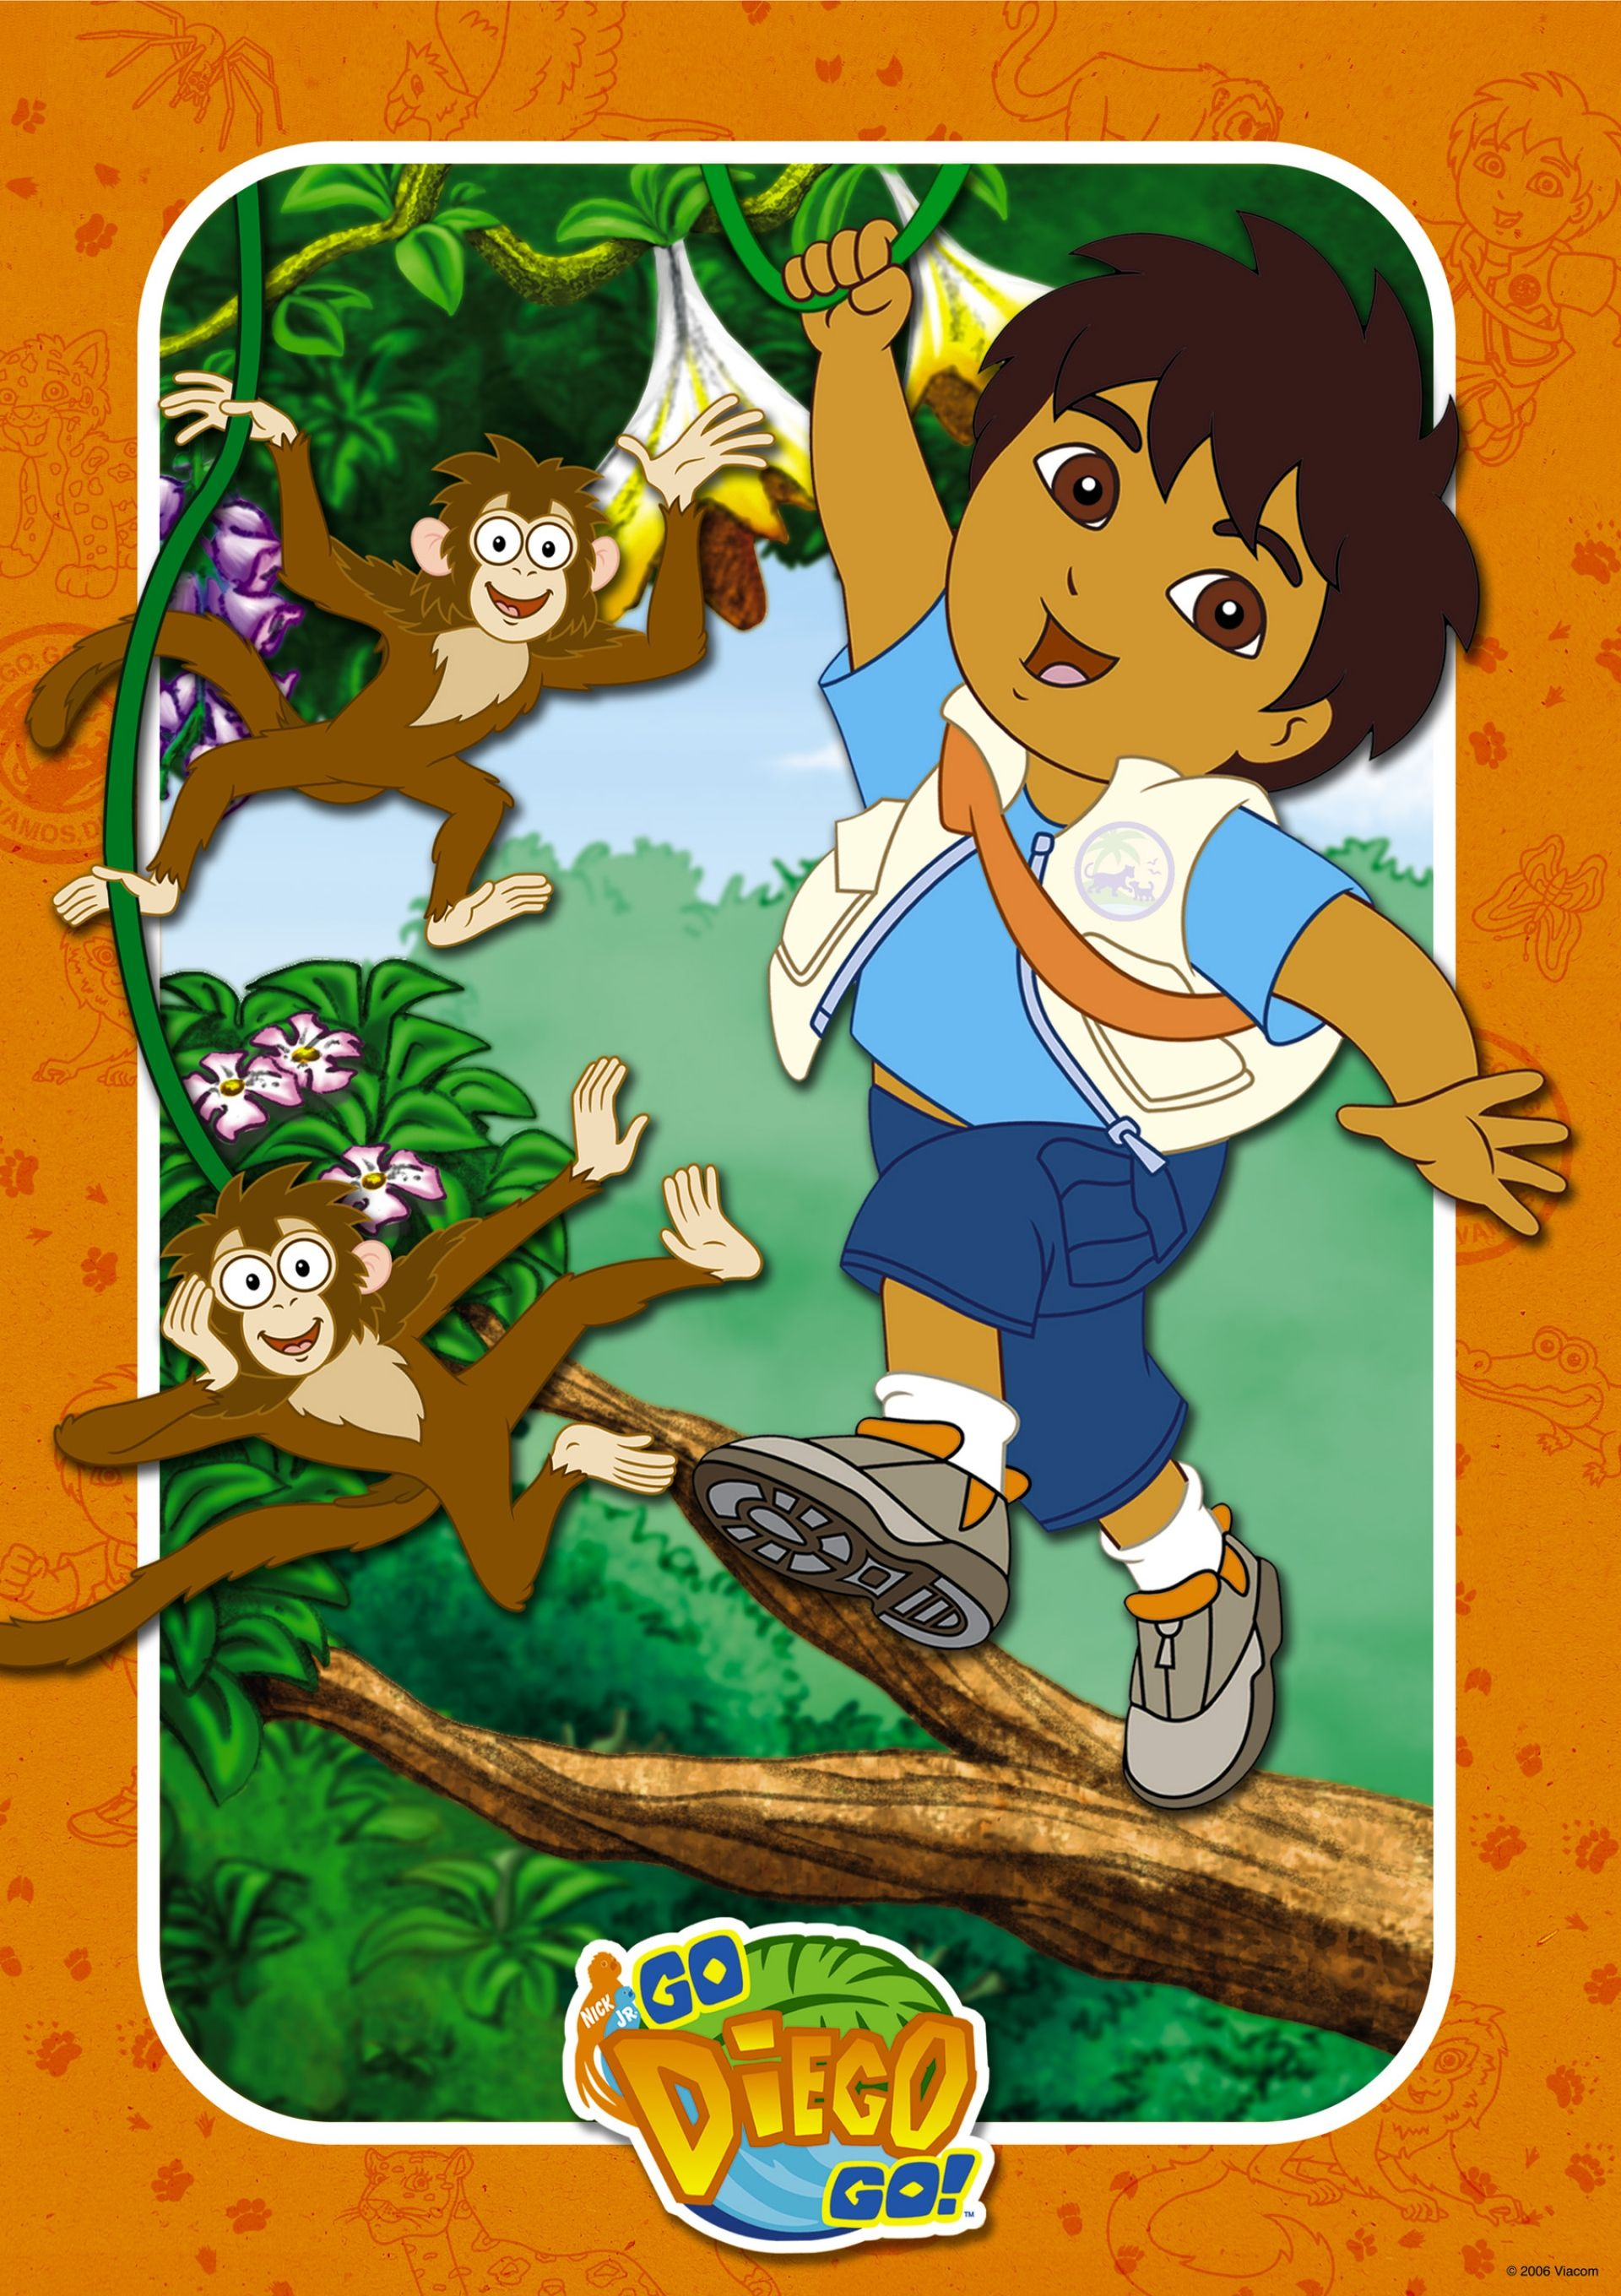 Pin by Crafty Annabelle on Diego Printables in 2019 | Go diego go, Zelda, Character